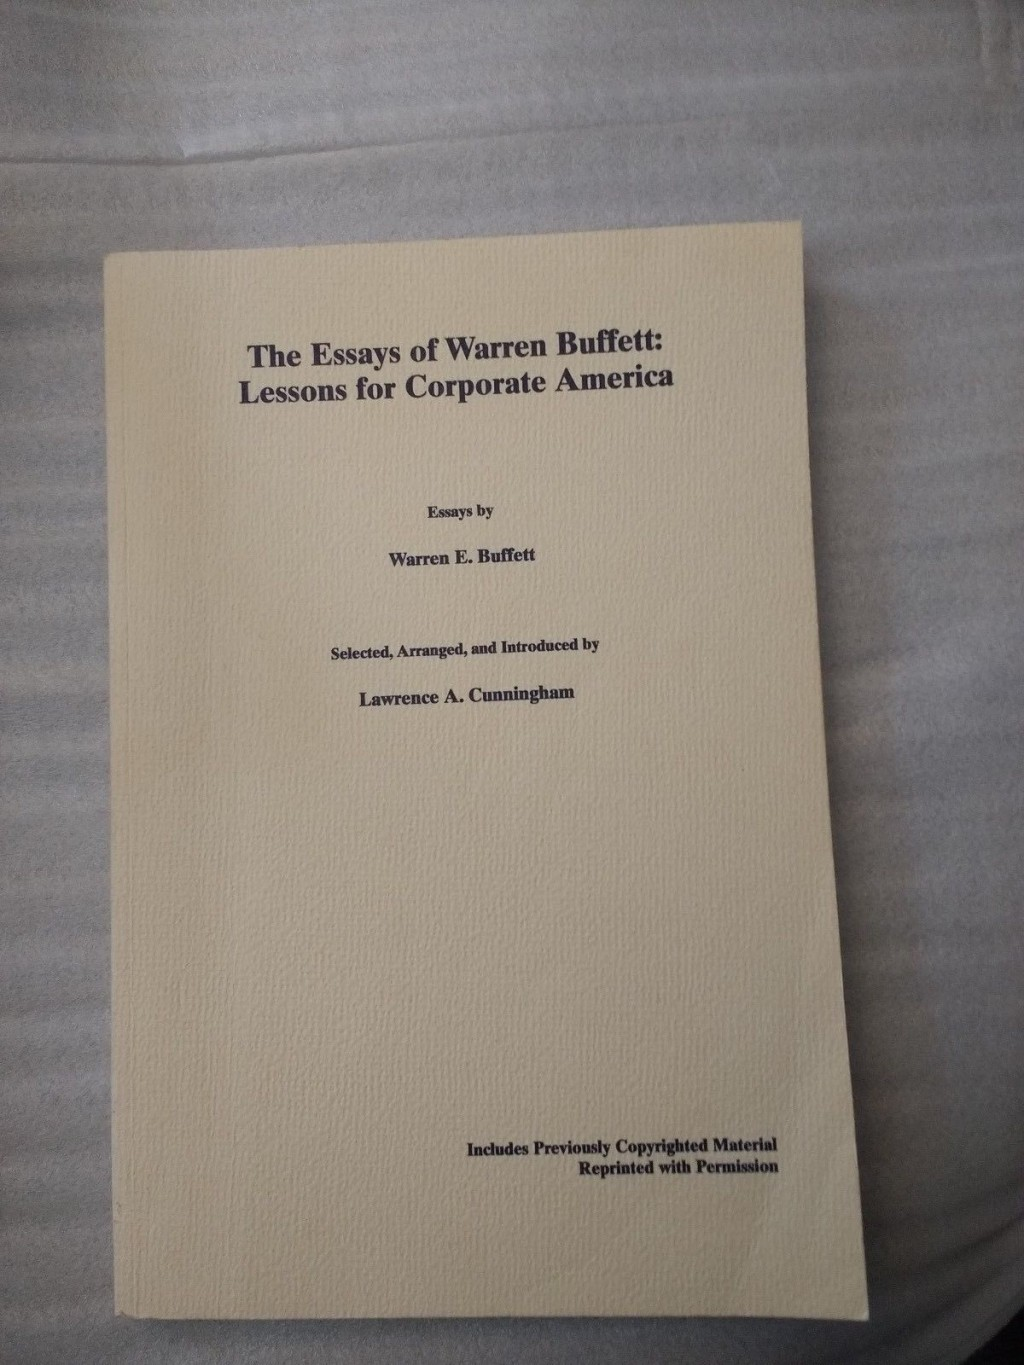 023 Essay Example S L1600 The Essays Of Warren Buffett Lessons For Corporate Remarkable America Third Edition 3rd Second Pdf Audio Book Large